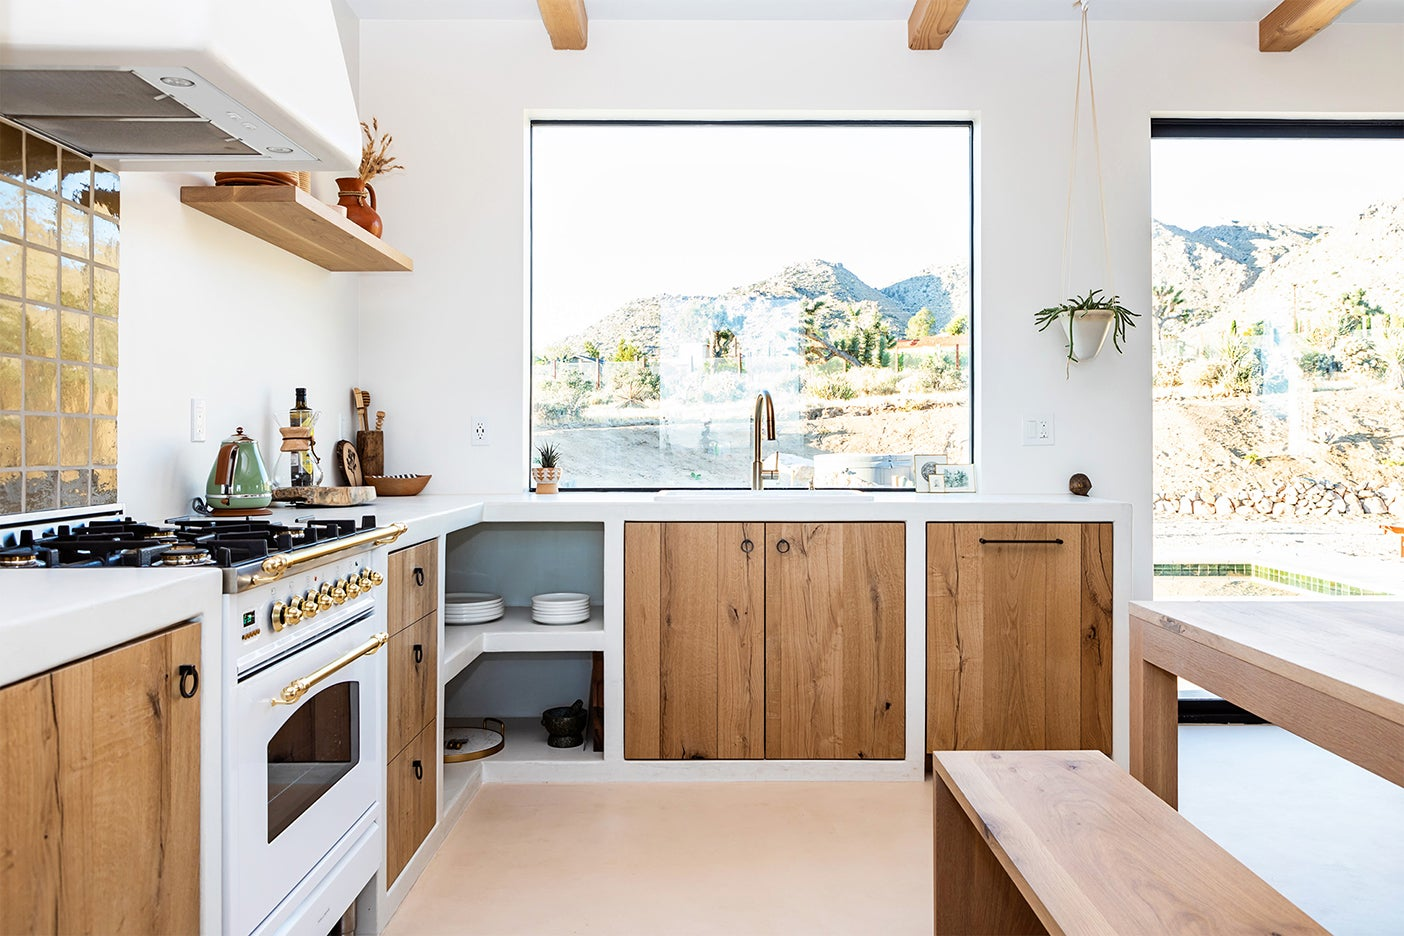 Kitchen with finca-style cabinets